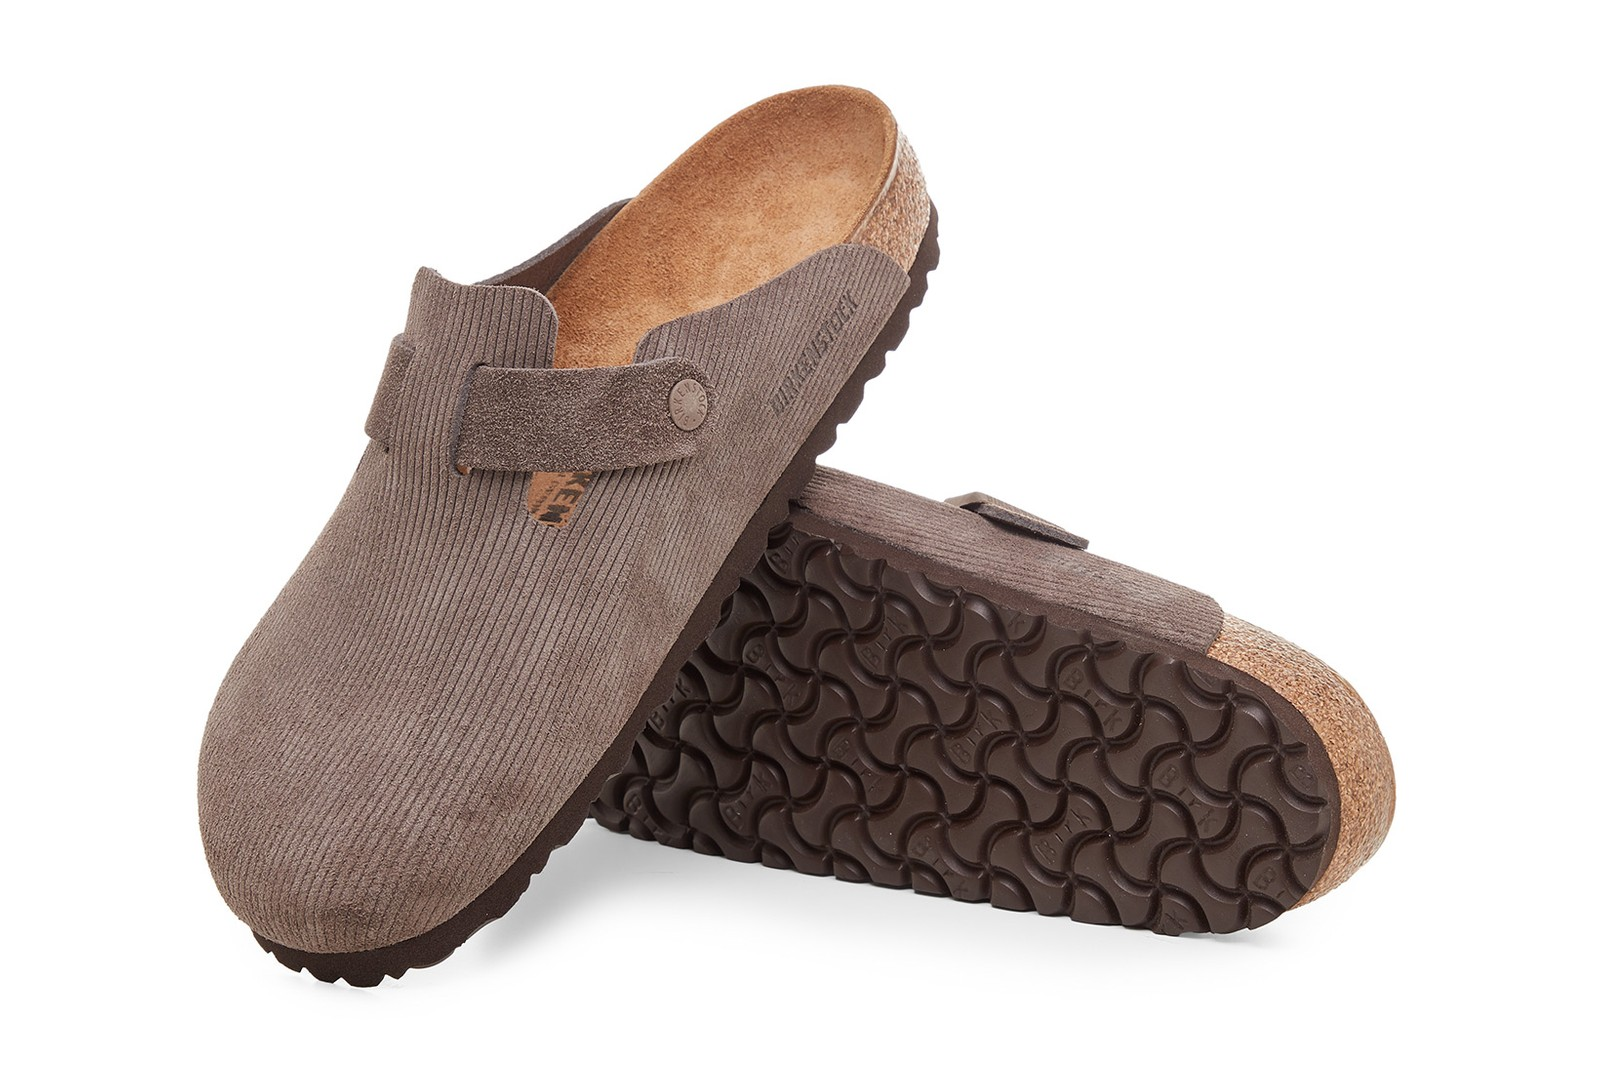 stussy birkenstock boston clogs mules slippers collaboration corduroy suede brown white anthracite bone